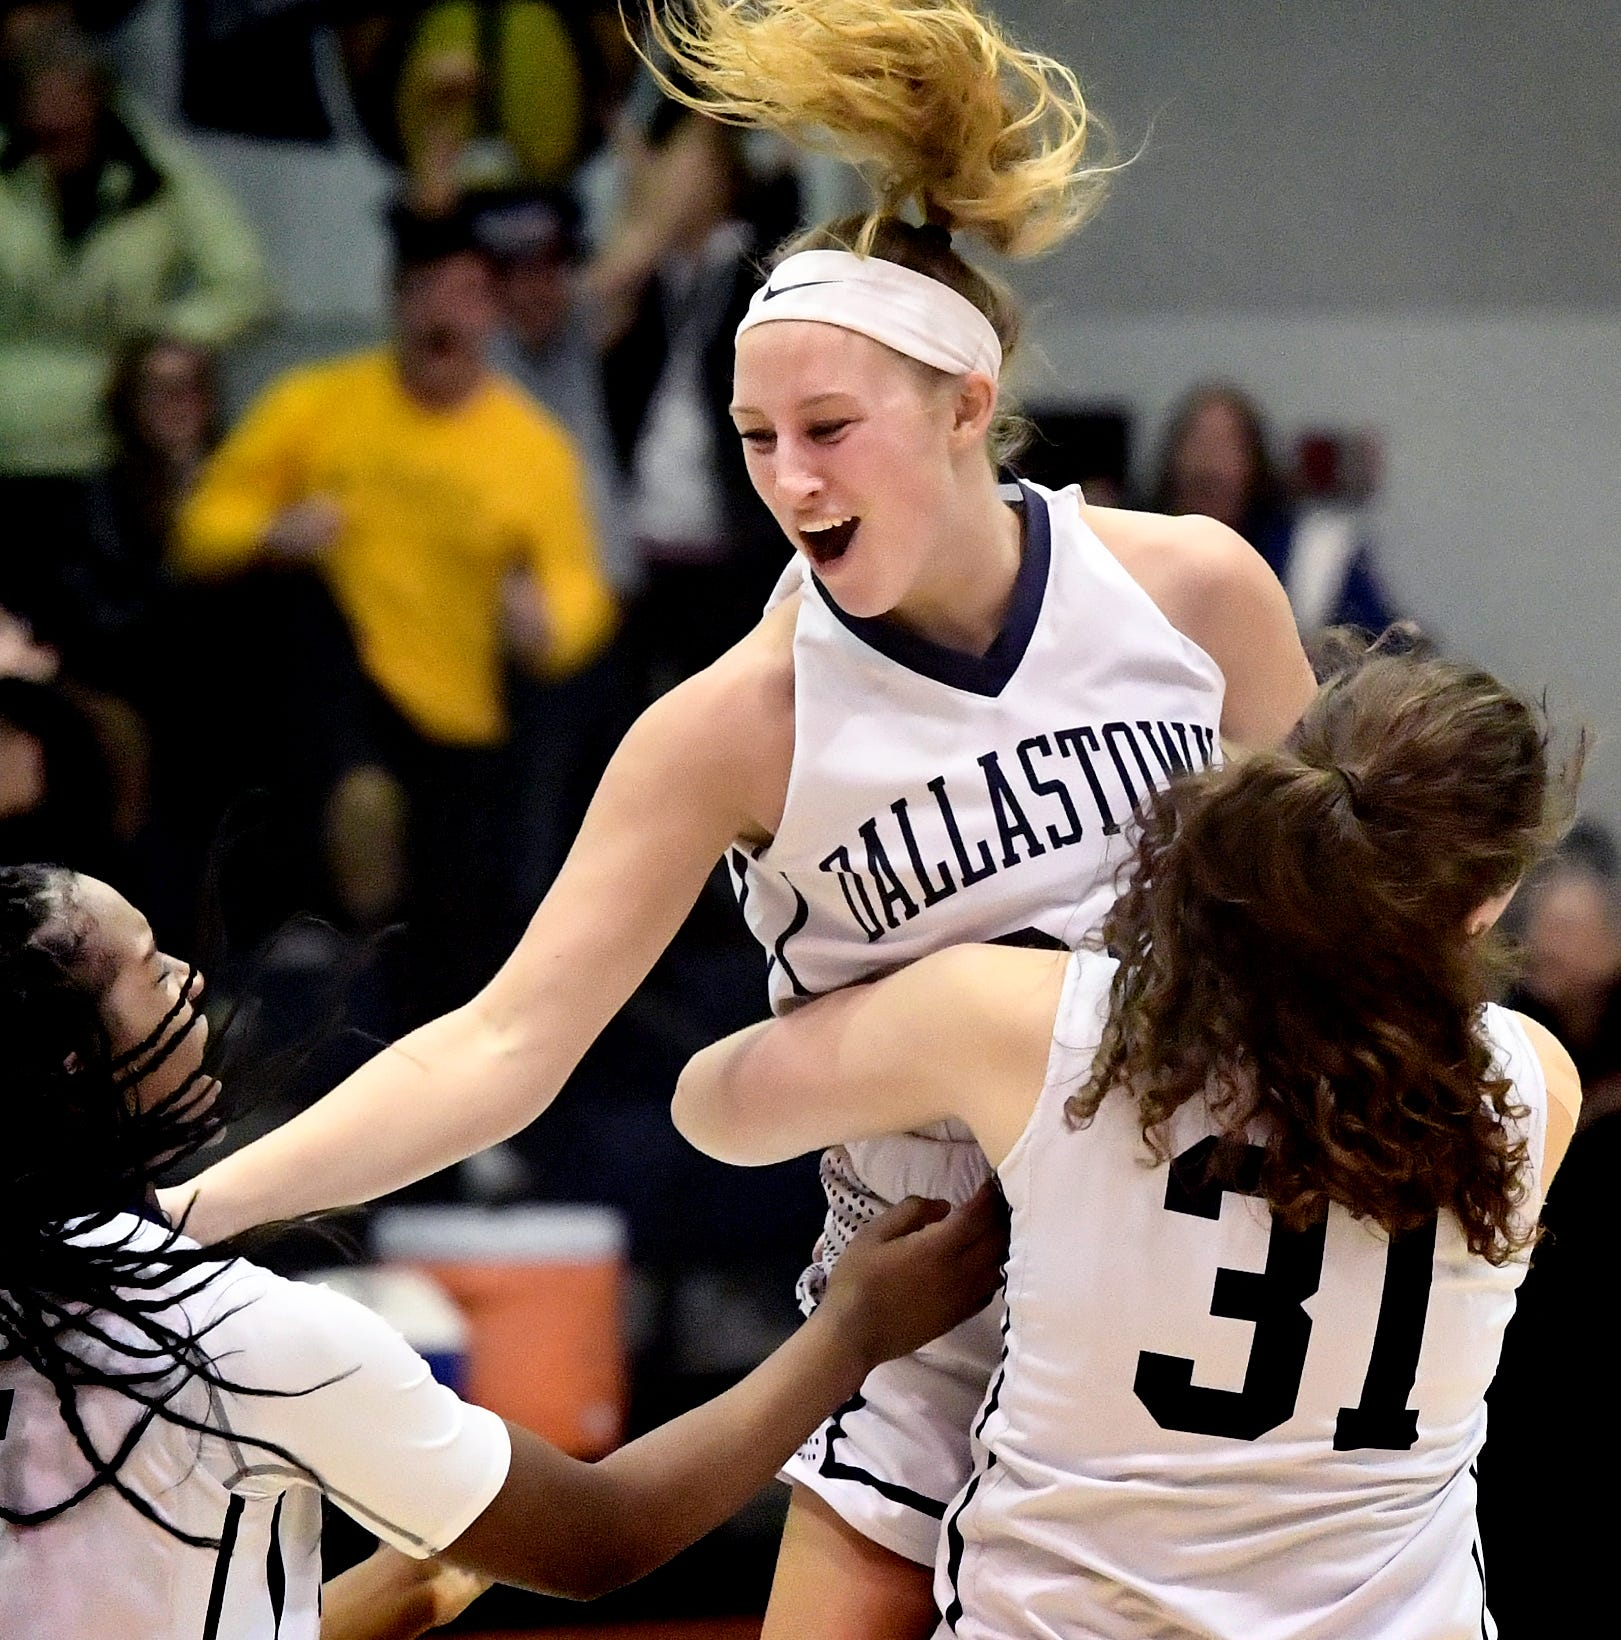 PREP ROUNDUP, TUESDAY, JAN. 22: Jamison's jumper gives Dallastown girls key triple-OT win